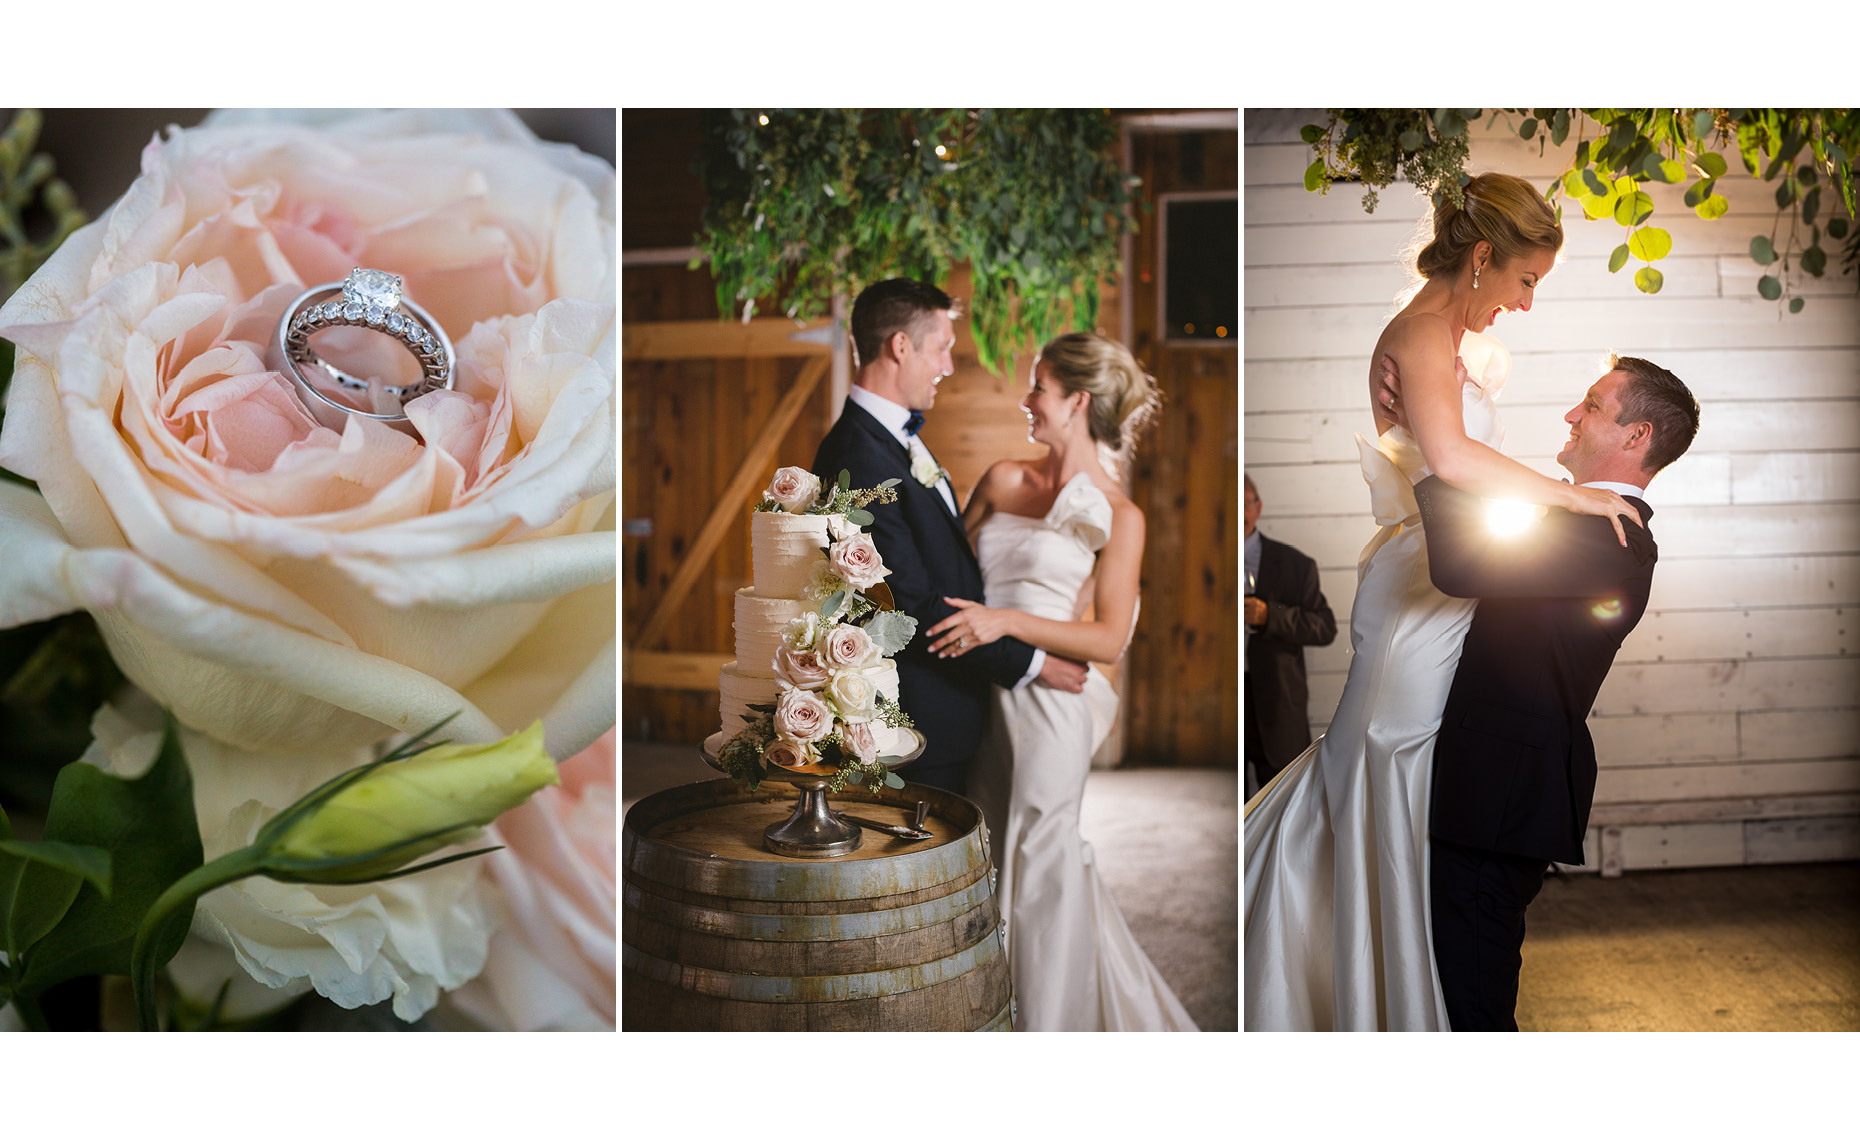 Special moments between bride and groom in vintage barn wedding in pemberton